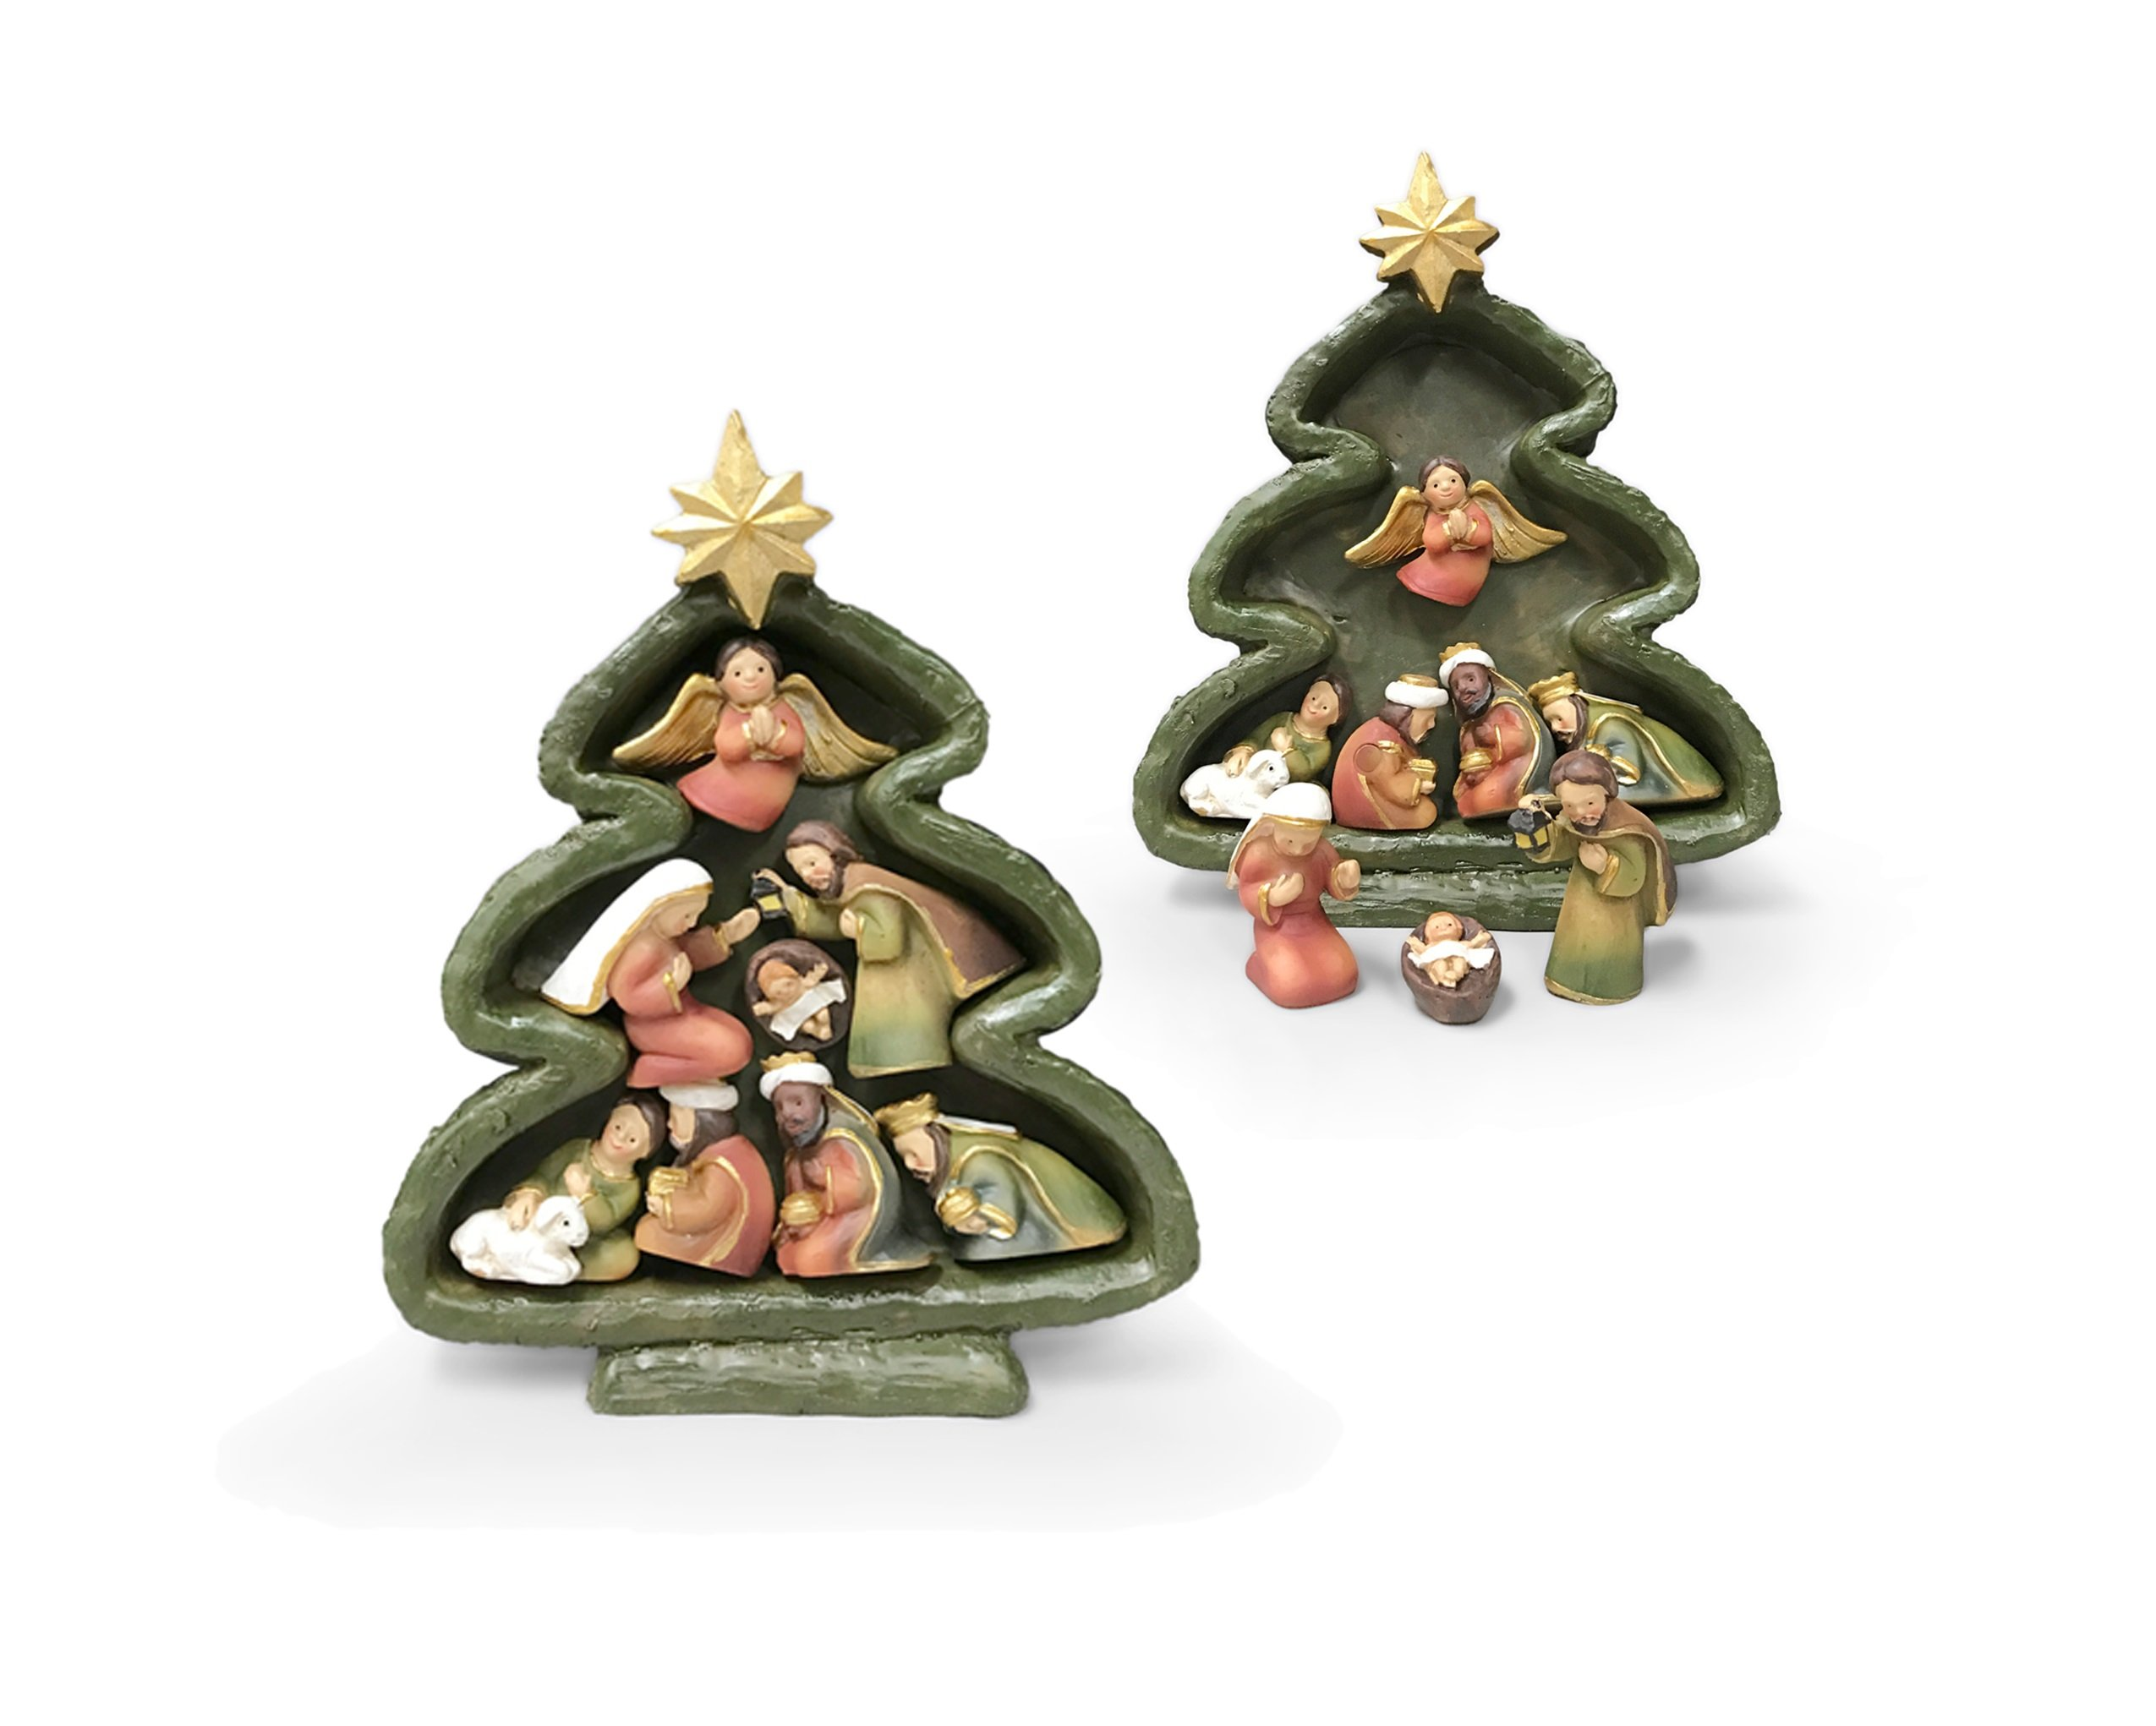 San Francis Imports Standing Christmas Tree Statue with Magnet Nativity Set Figurines, 6 Inch